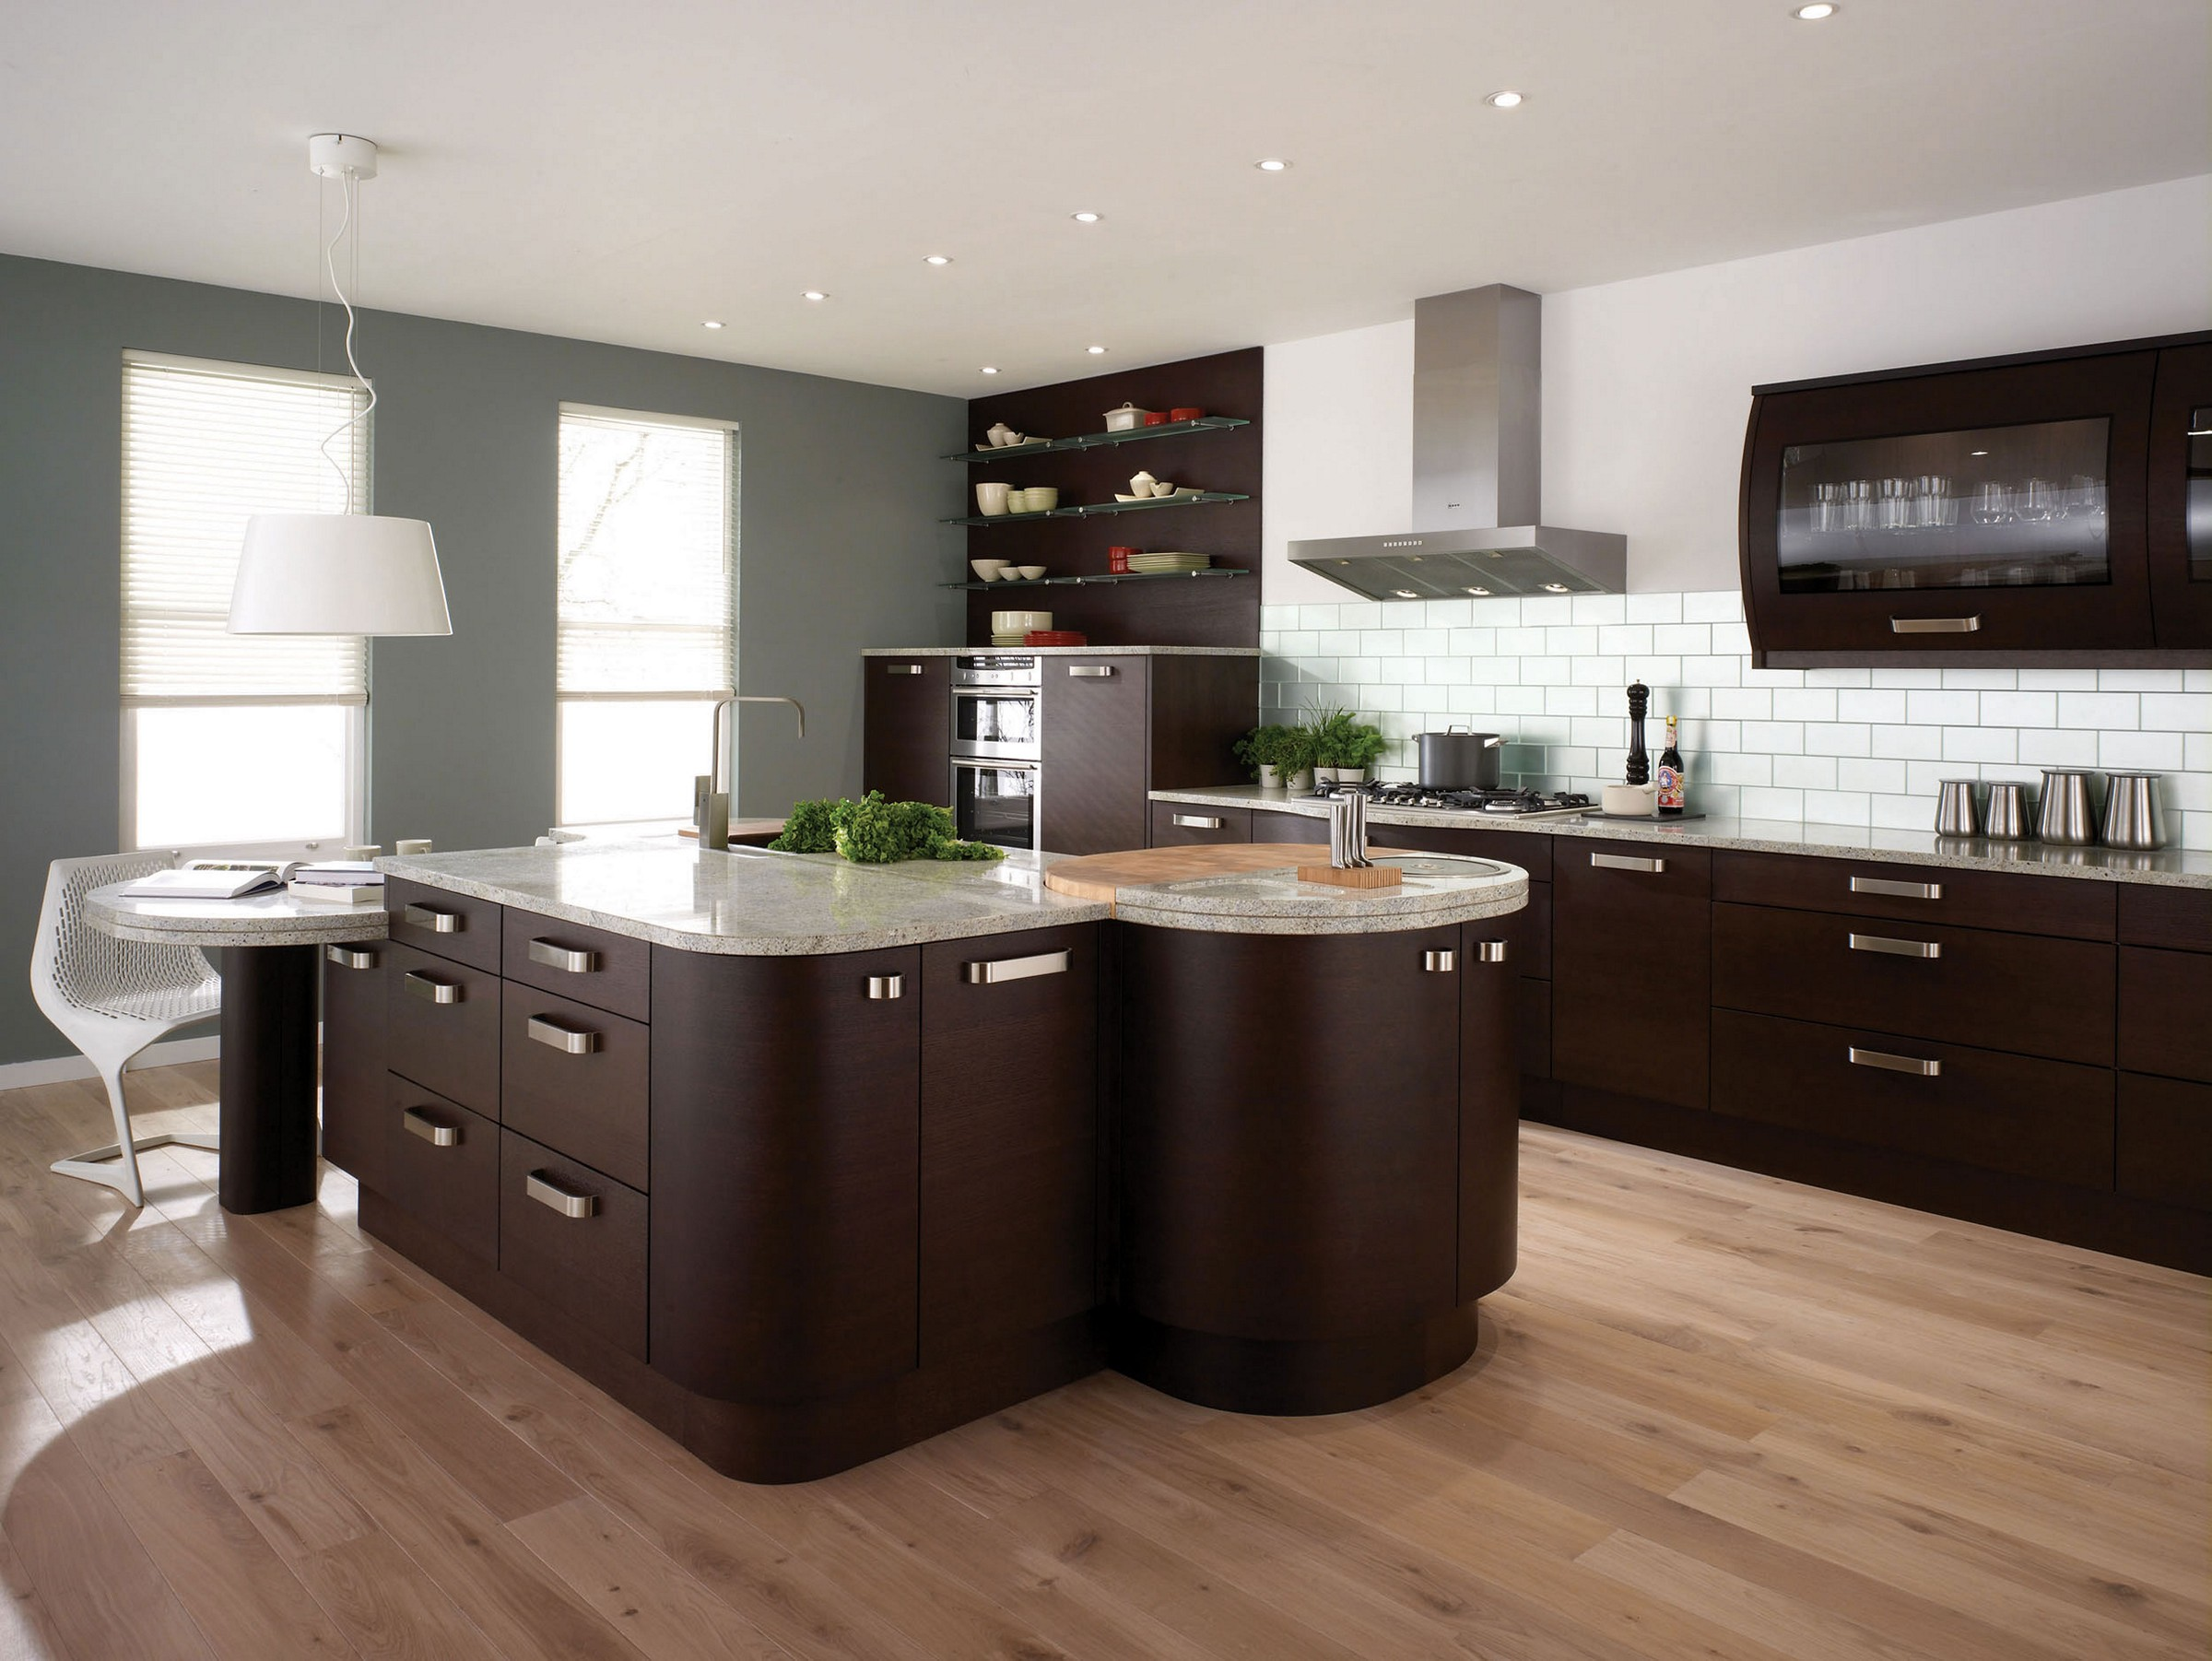 brown-kitchen-cabinets-for-inspirational-bewitching-kitchen-ideas-for-remodeling-your-kitchen-16